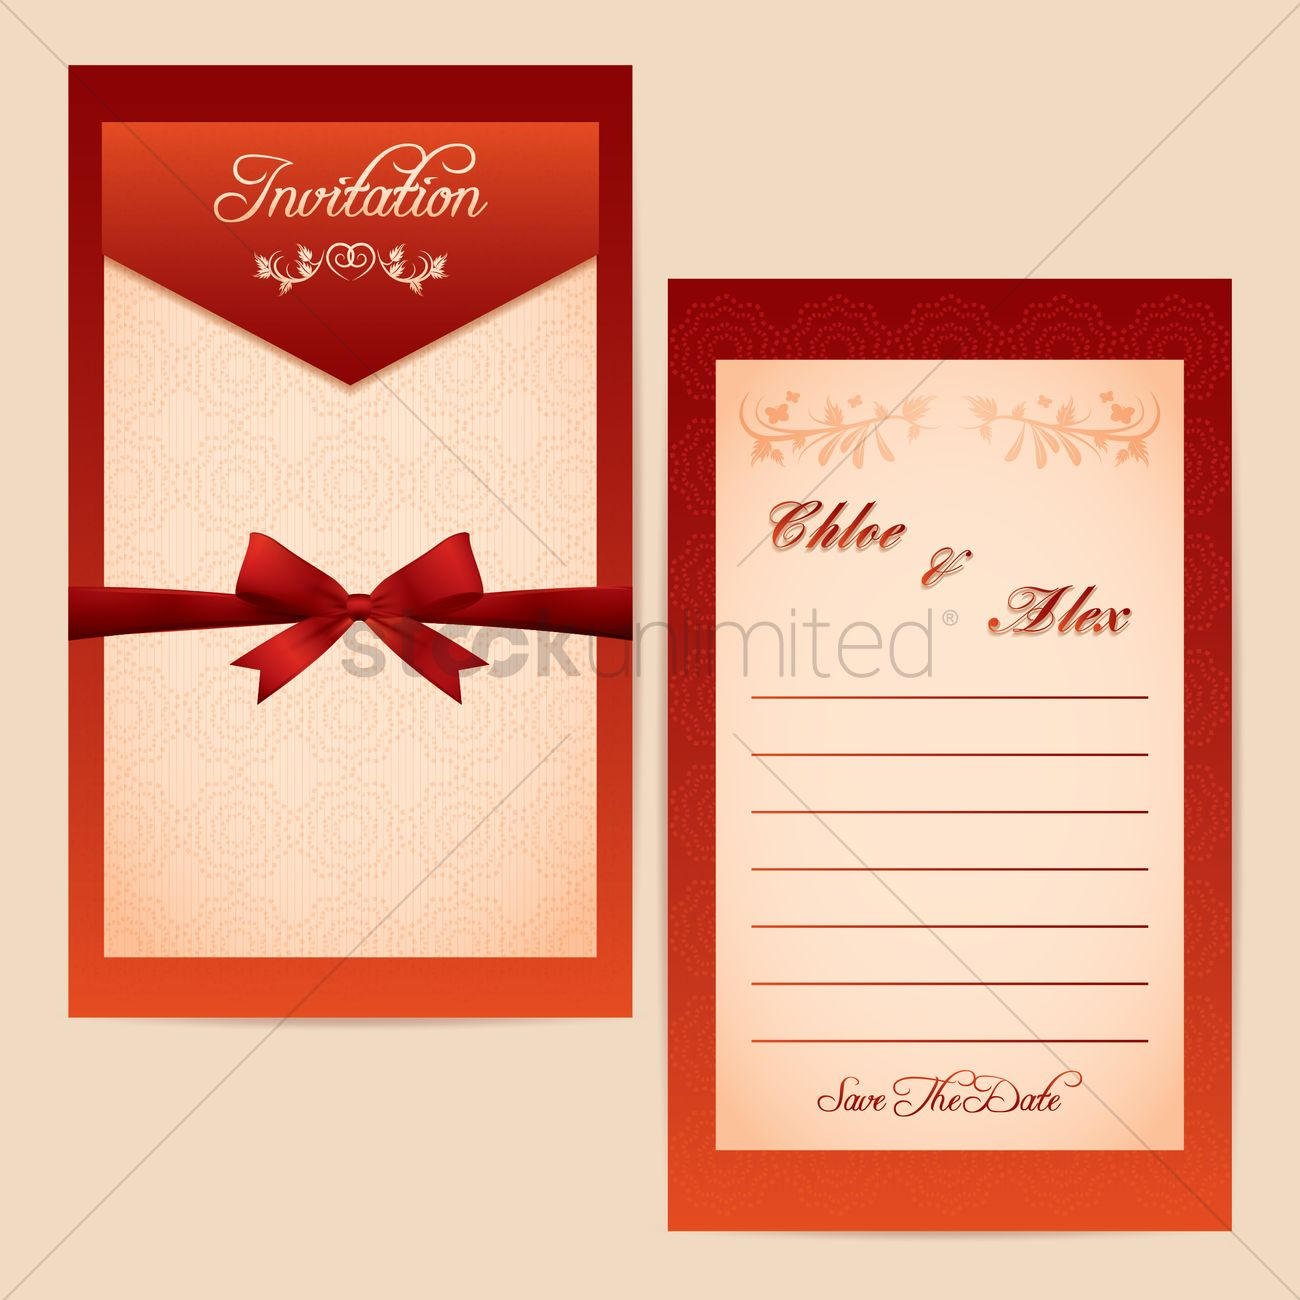 Wedding invitational card design Vector Image - 1996330 | StockUnlimited